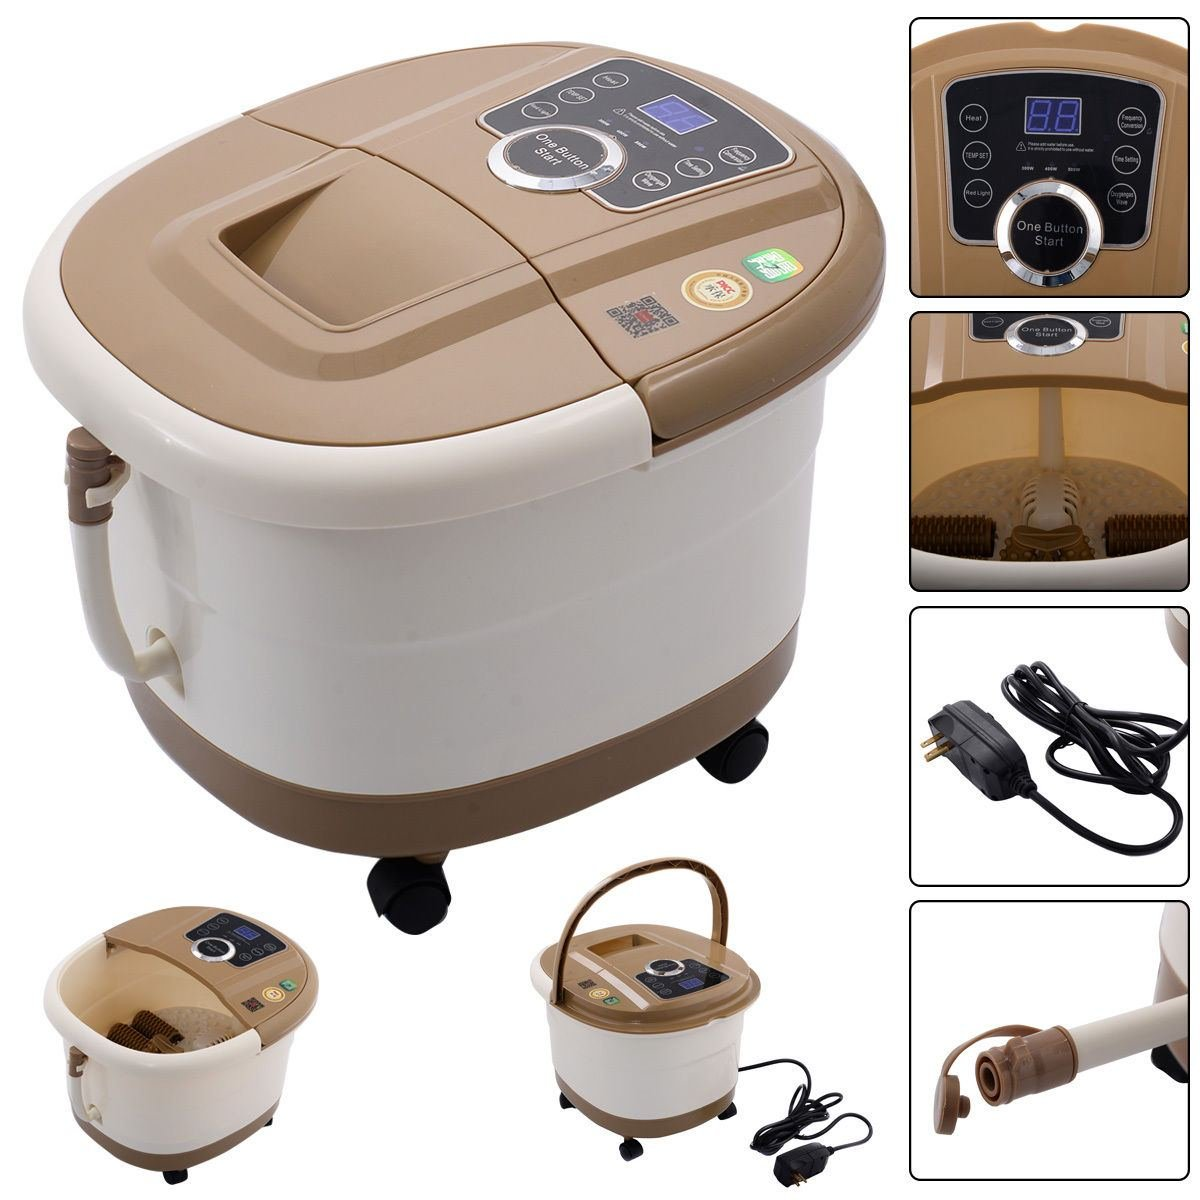 Portable-Foot-Spa-Bath-Massager-Bubble-Heat-LED-Display-Vibration-Infrared-Relax